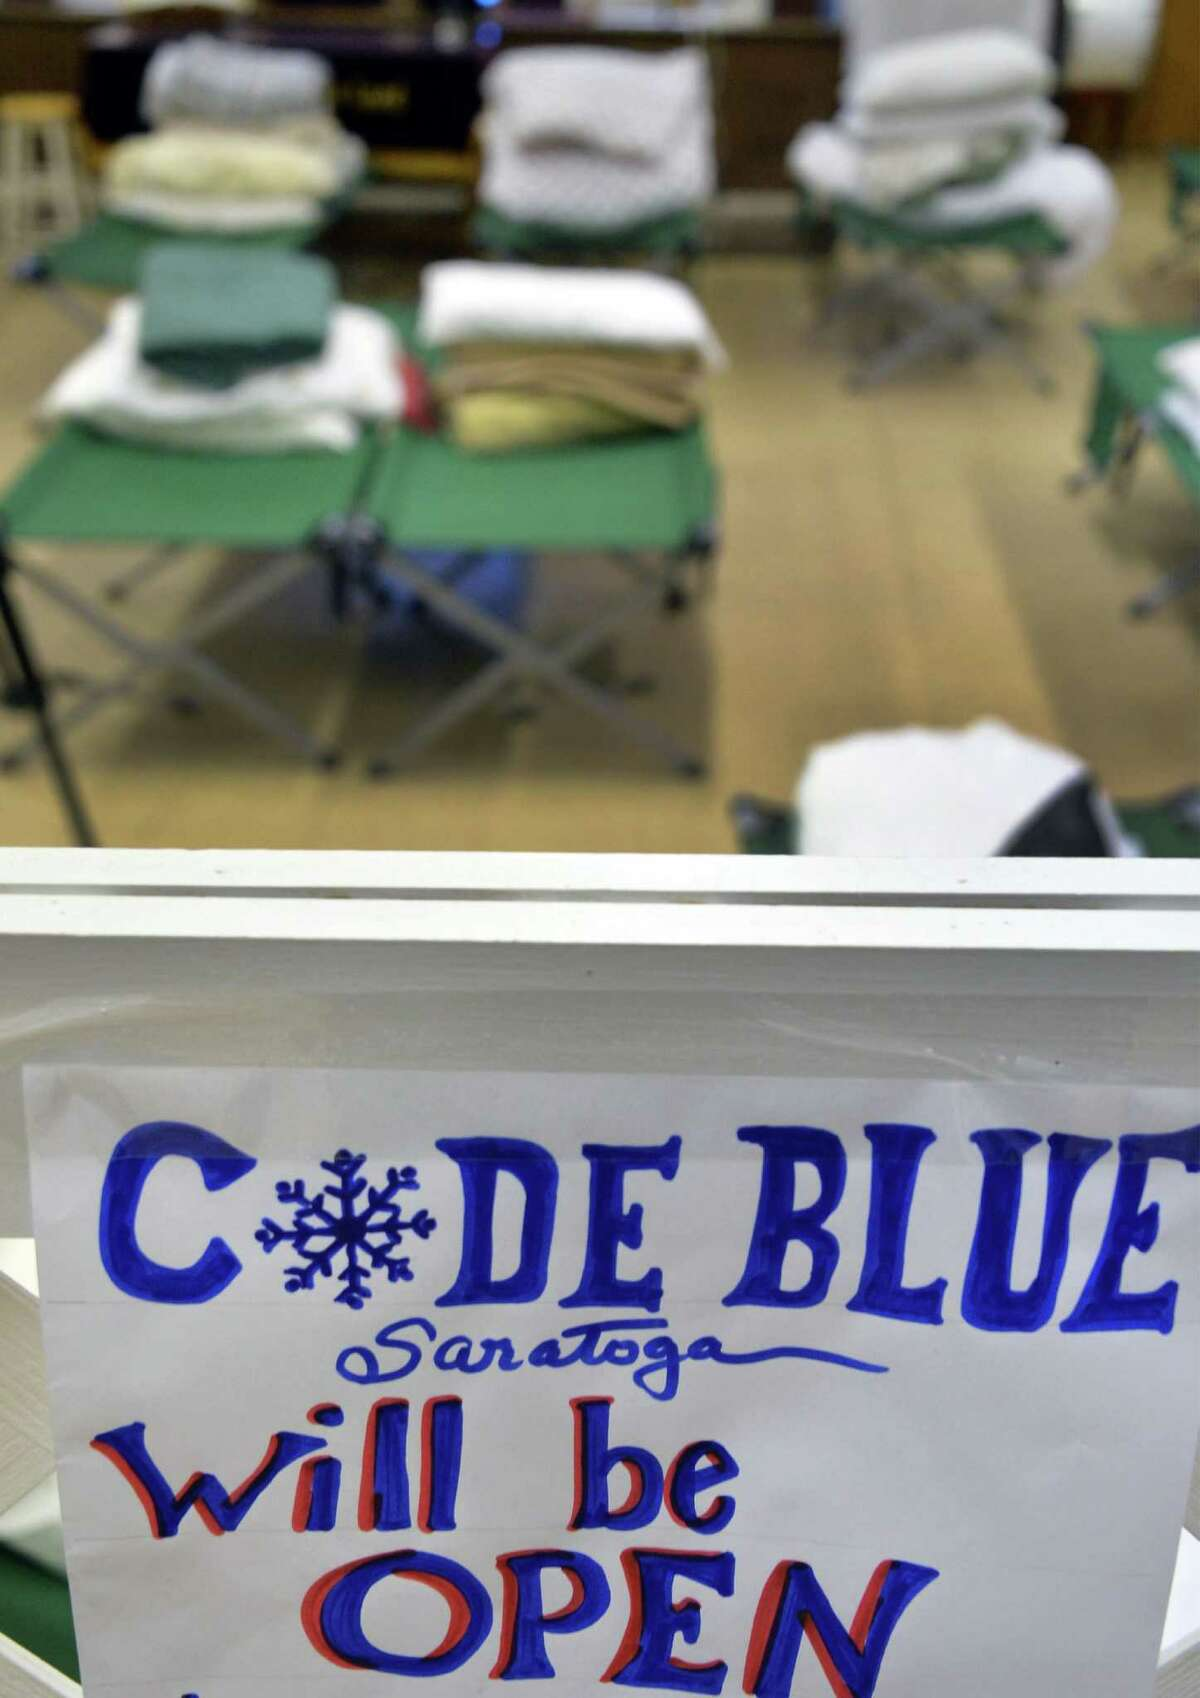 Code Blue Saratoga bedding in the worship center at the Salvation Army Tuesday Feb. 16, 2016 in Saratoga Springs, NY. The code blue shelter is now at 4 Adelphi St. in Saratoga Springs. (John Carl D'Annibale / Times Union)